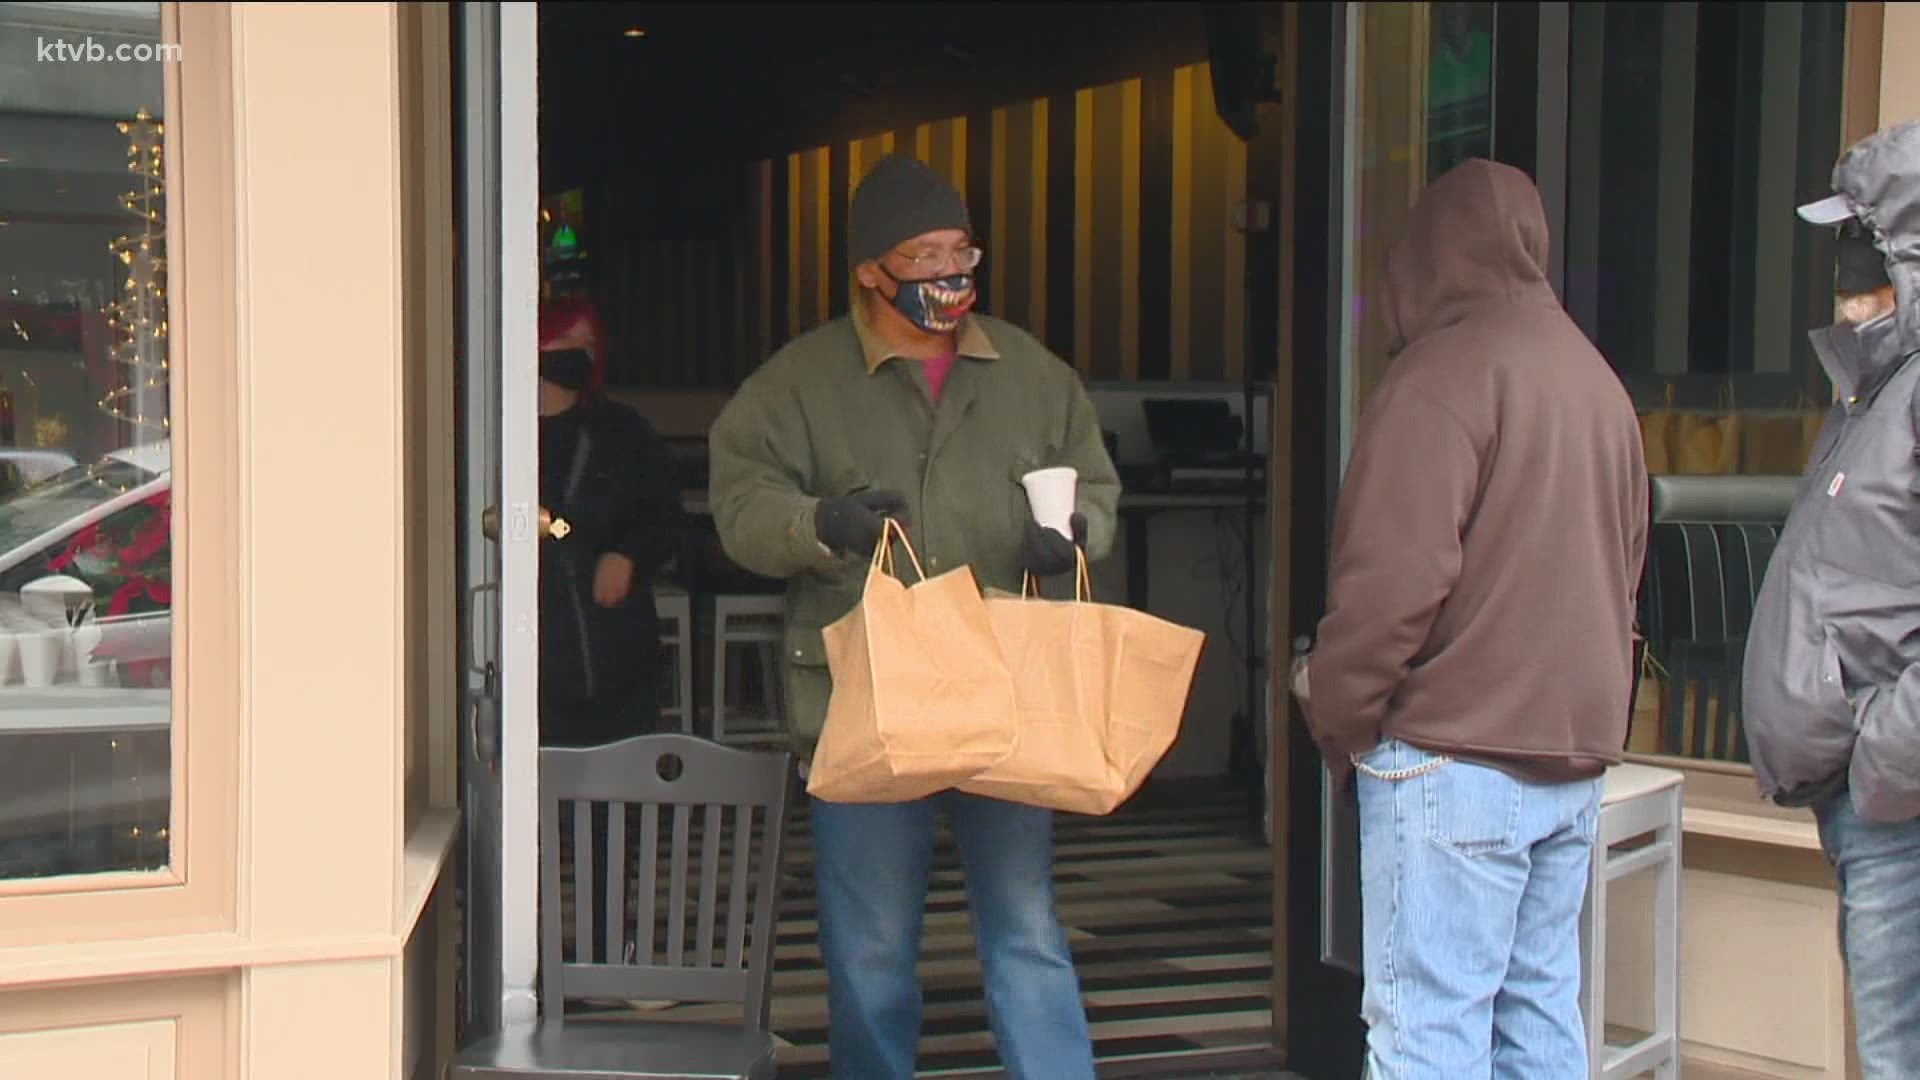 Christmas Day Buffet On Christmas Day Boise Id 2021 Downtown Boise Restaurants Provide Free Christmas Dinner To Those In Need Ktvb Com